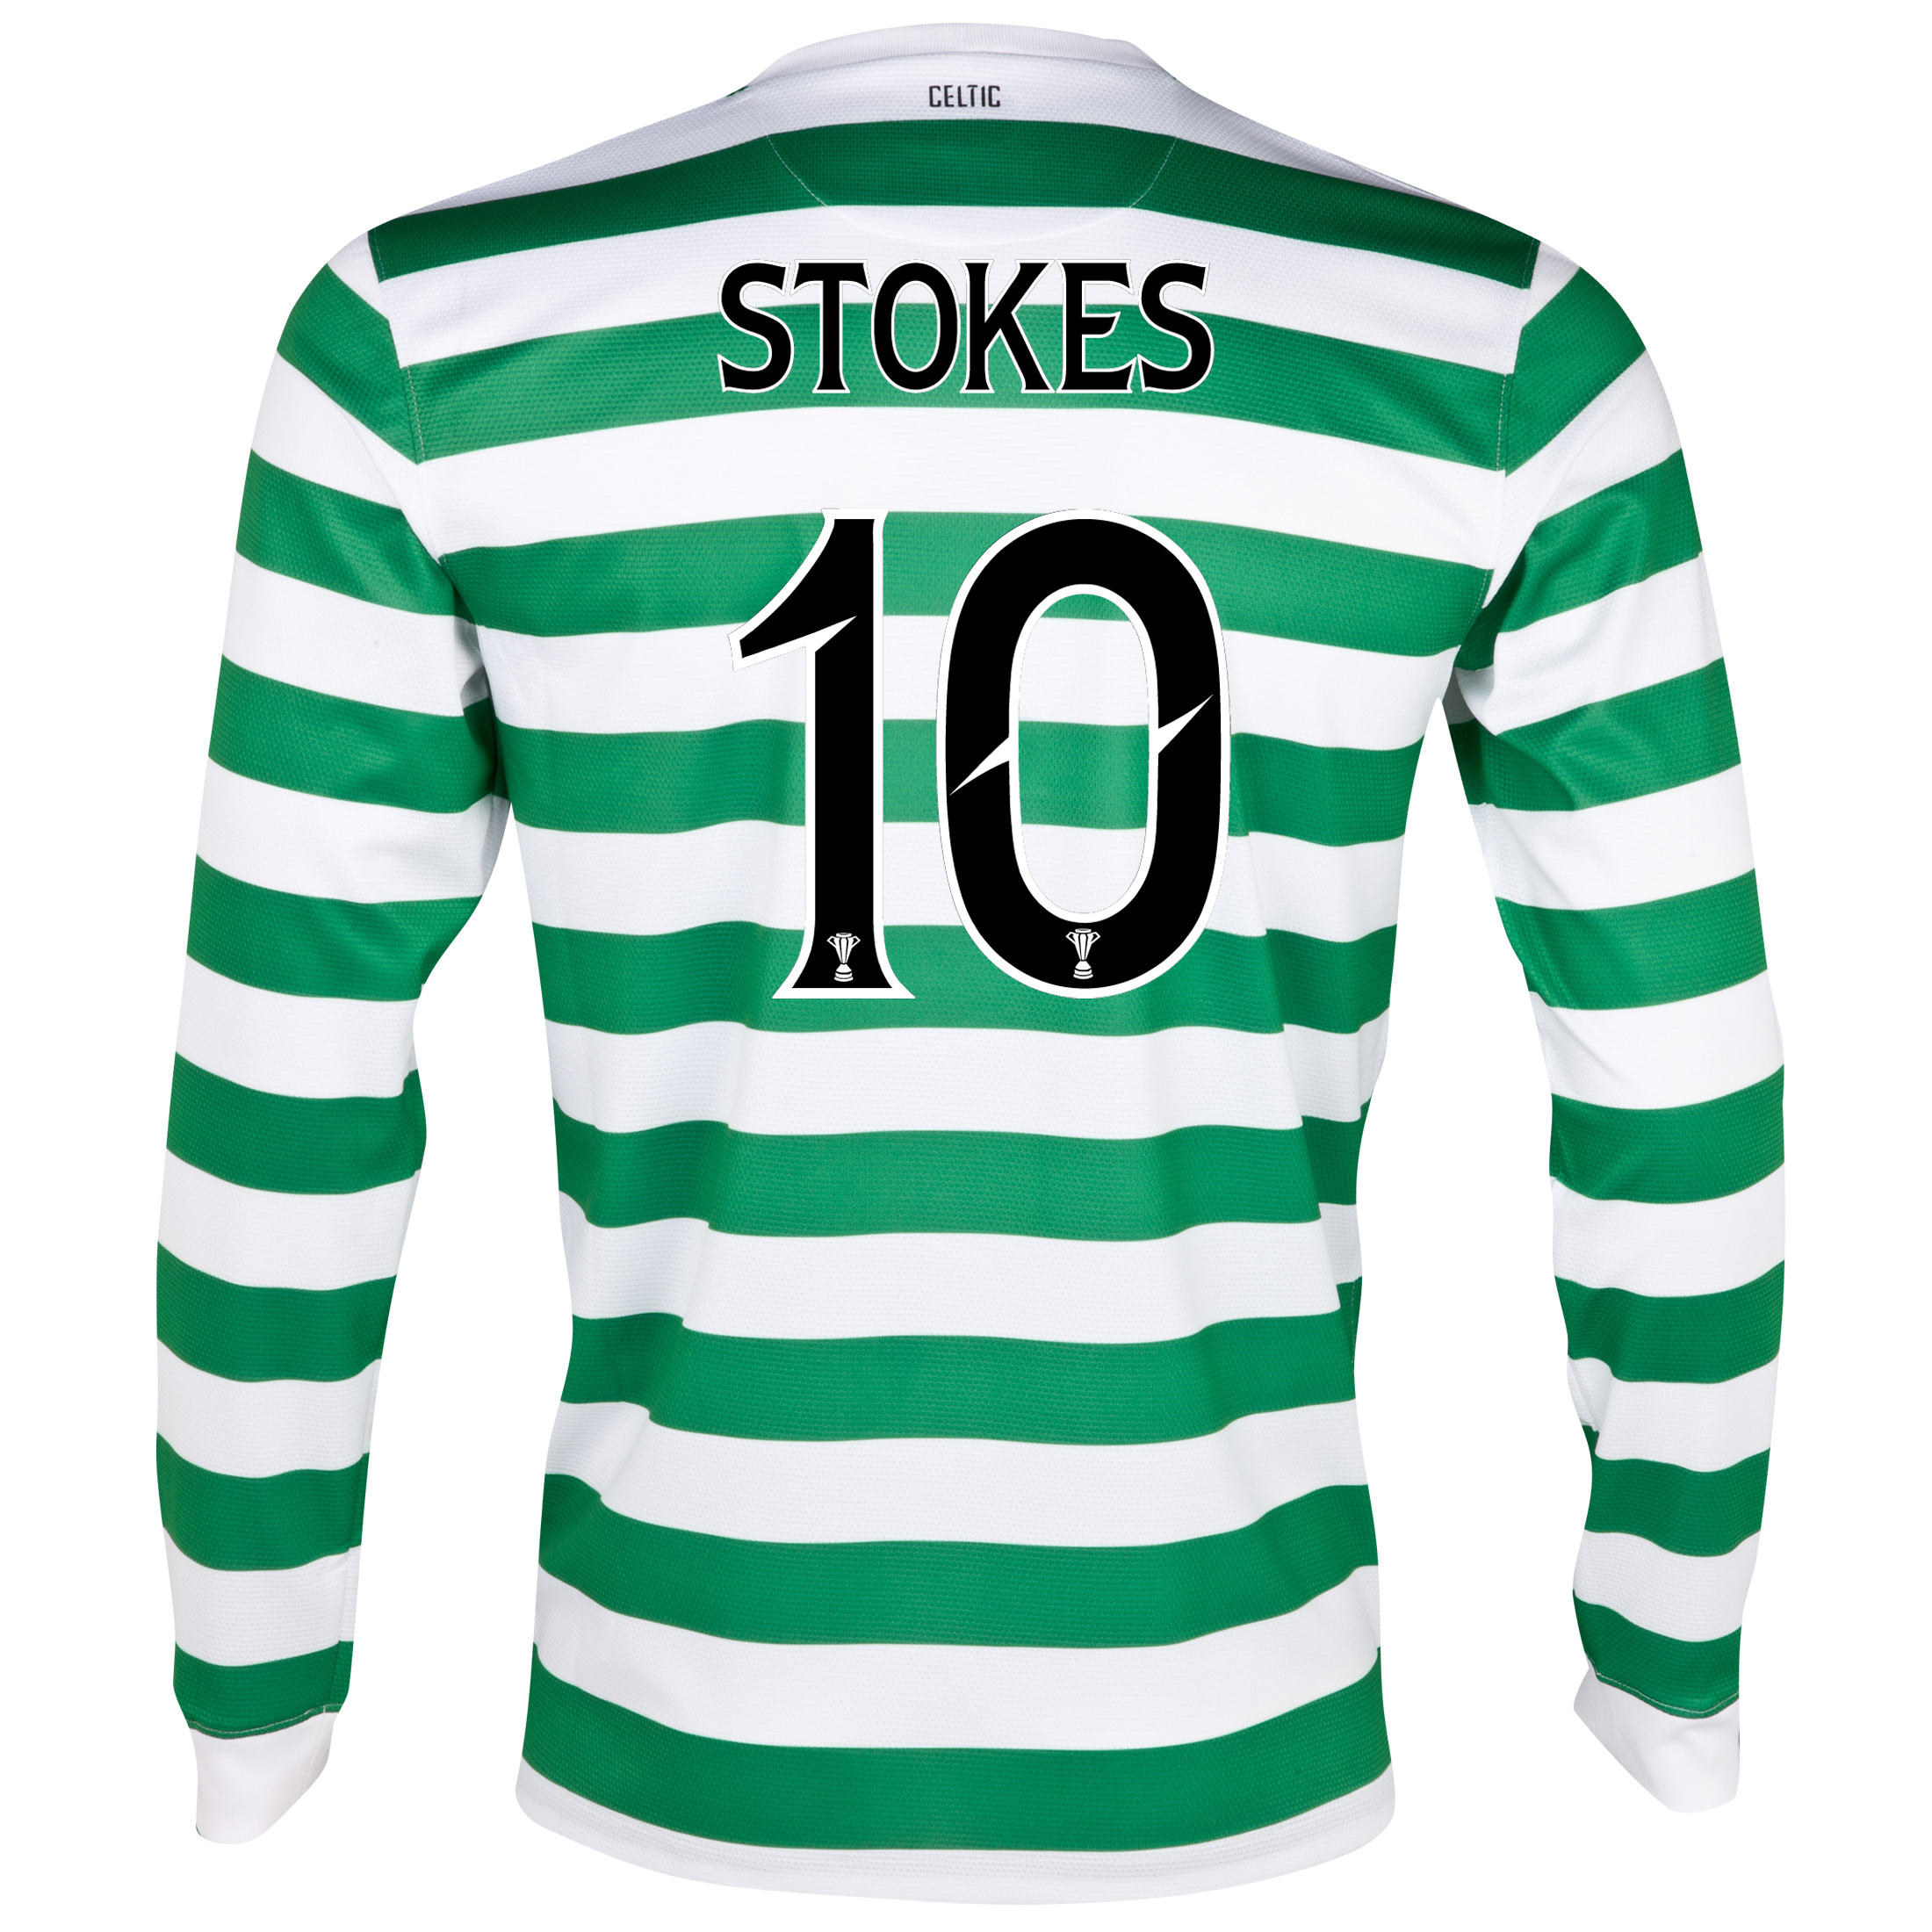 Celtic Home Shirt 2012/13 - Long Sleeved - No Sponsor with Stokes 10 printing